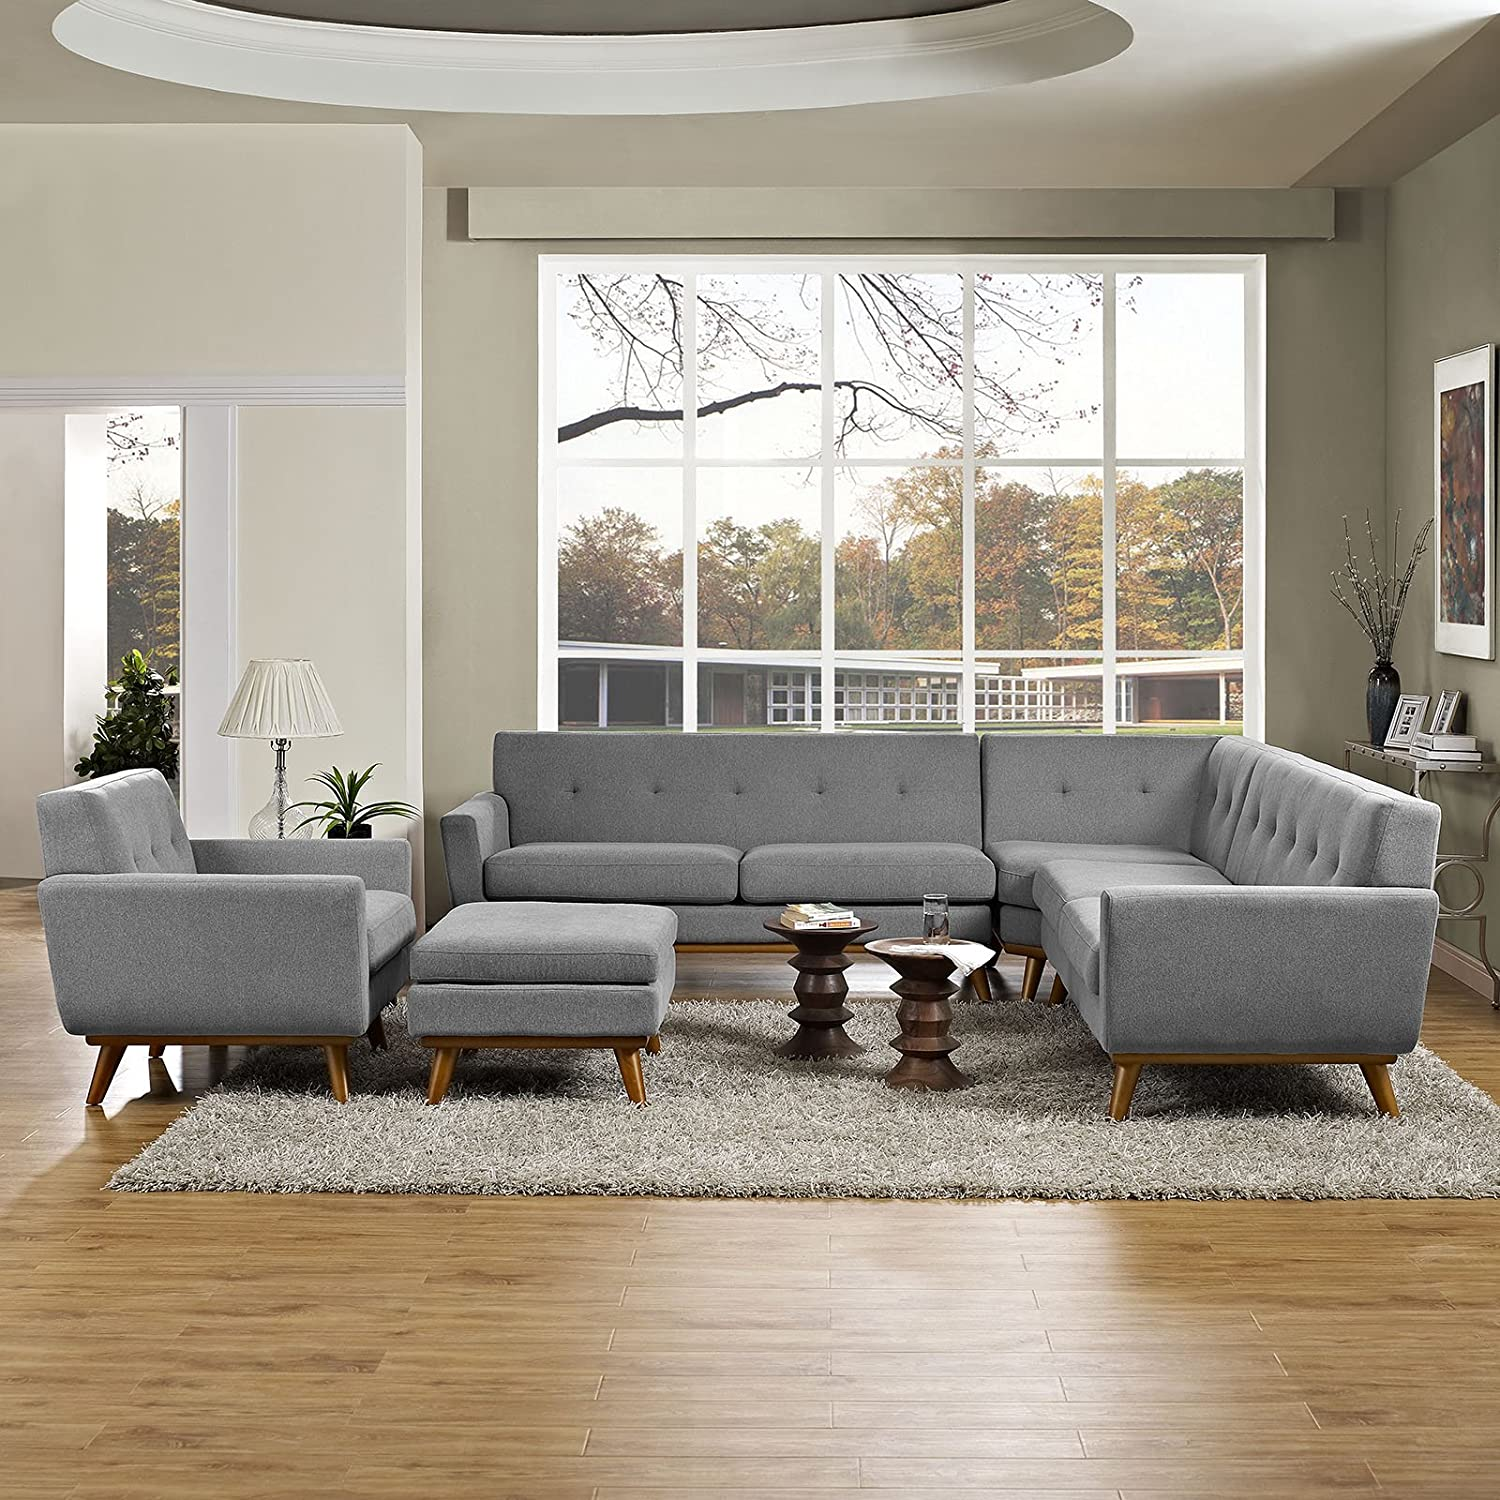 Engage 5 Piece Sectional Sofa - Gray